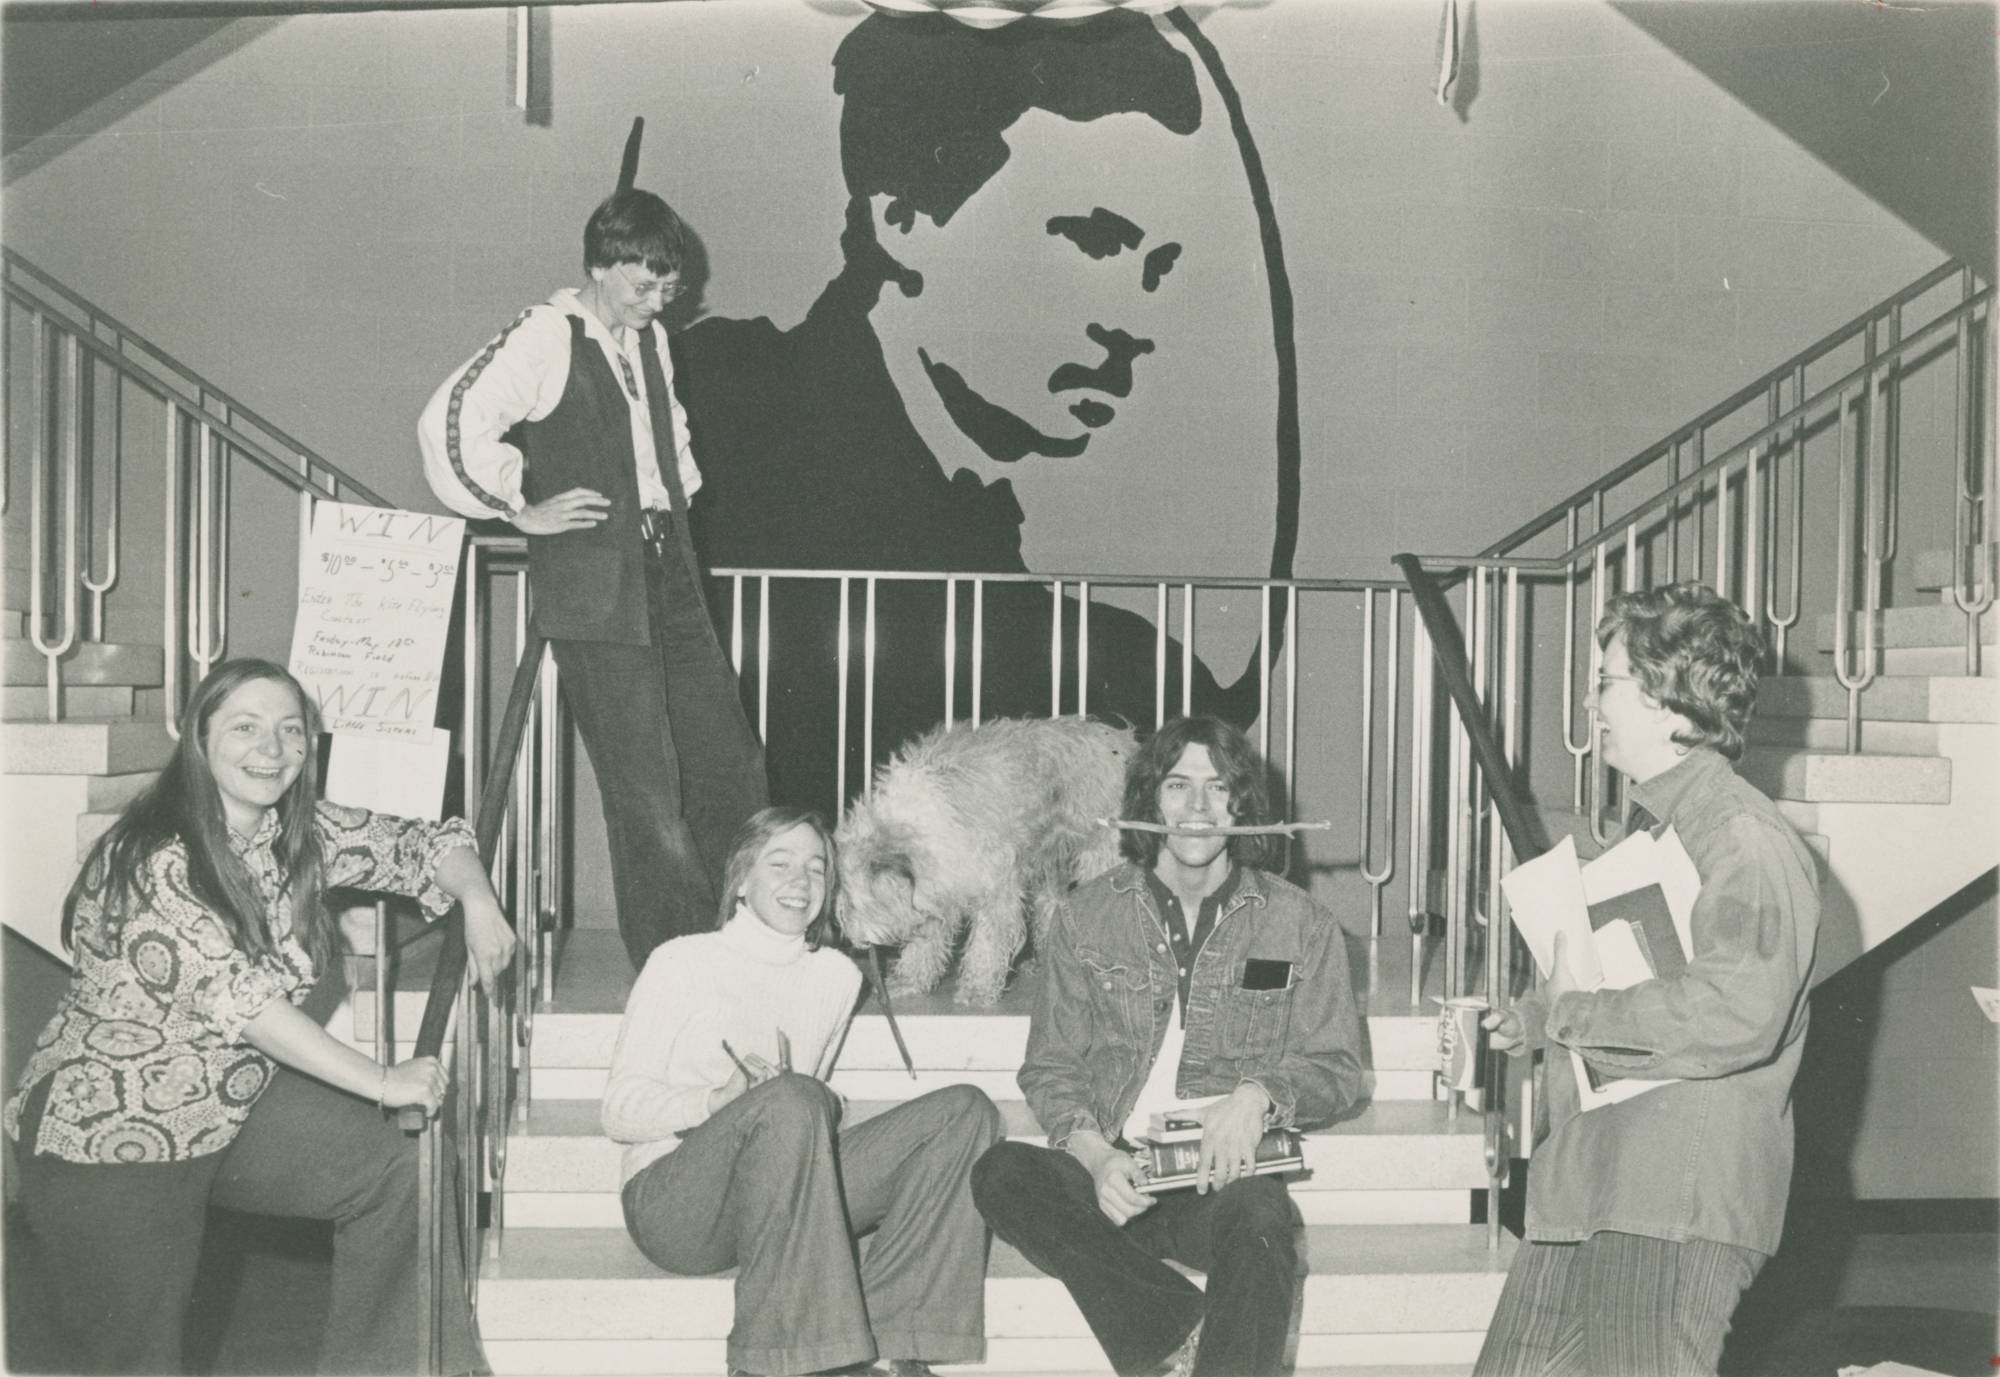 A black and white photo of students and faculty sitting and standing on the stairs in front of the William James mural in Lake Superior Hall.